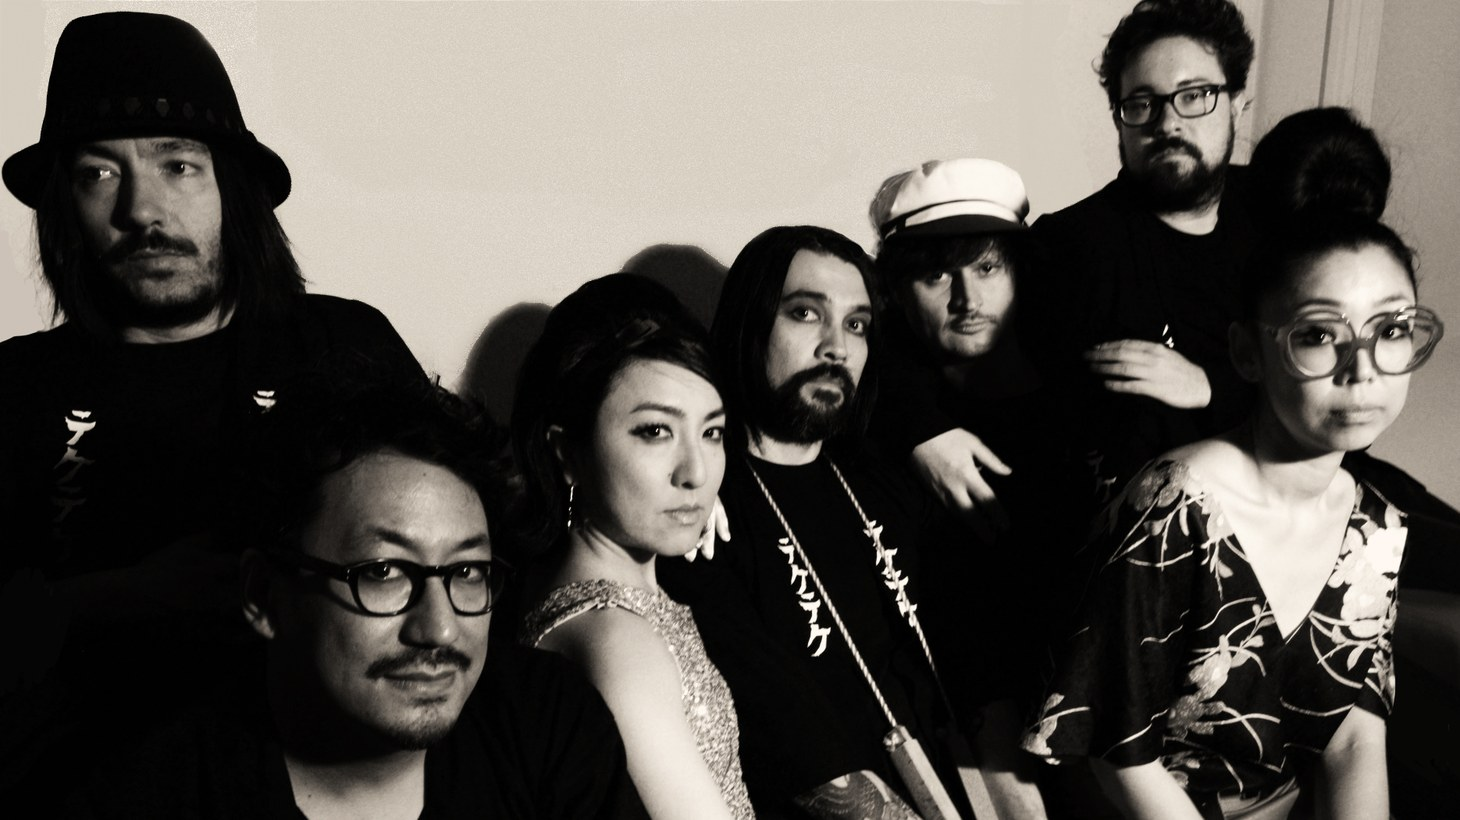 Check out the raw energy and sound of Montreal's seven piece East-Asian psych-punk band TEKE::TEKE. Led by visual artist and singer Maya Kuroki, this outfit plays traditional Japanese instruments up against raging guitars.